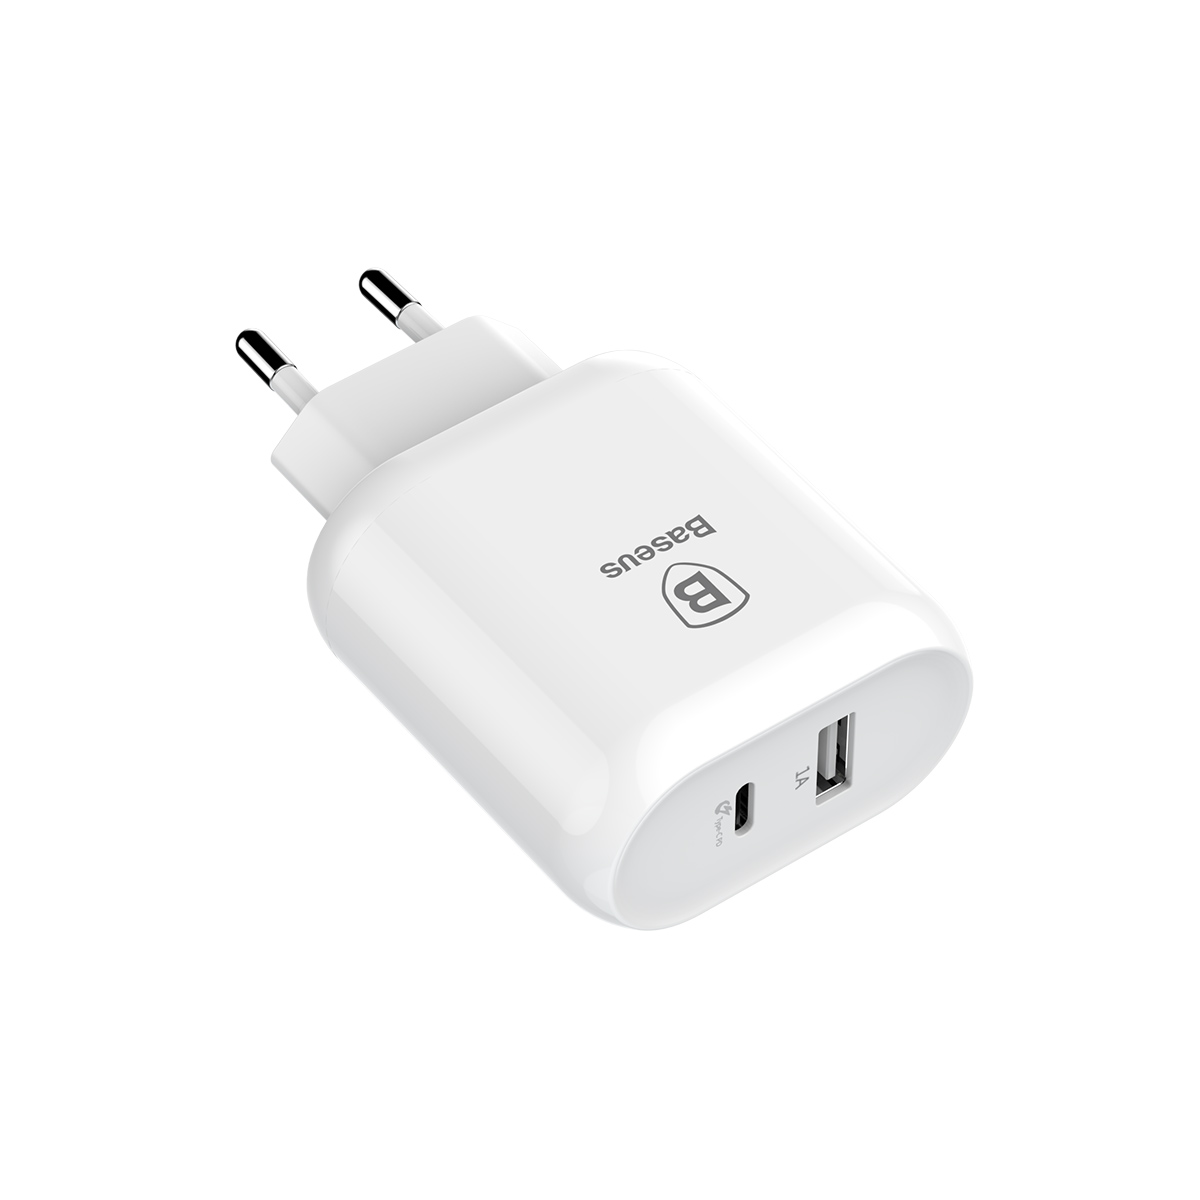 Сетевое зарядное устройство Baseus Bojure SeriesType-C PD+U quick charge charger EU 32W set White remax moon series rp u31 white зарядное устройство